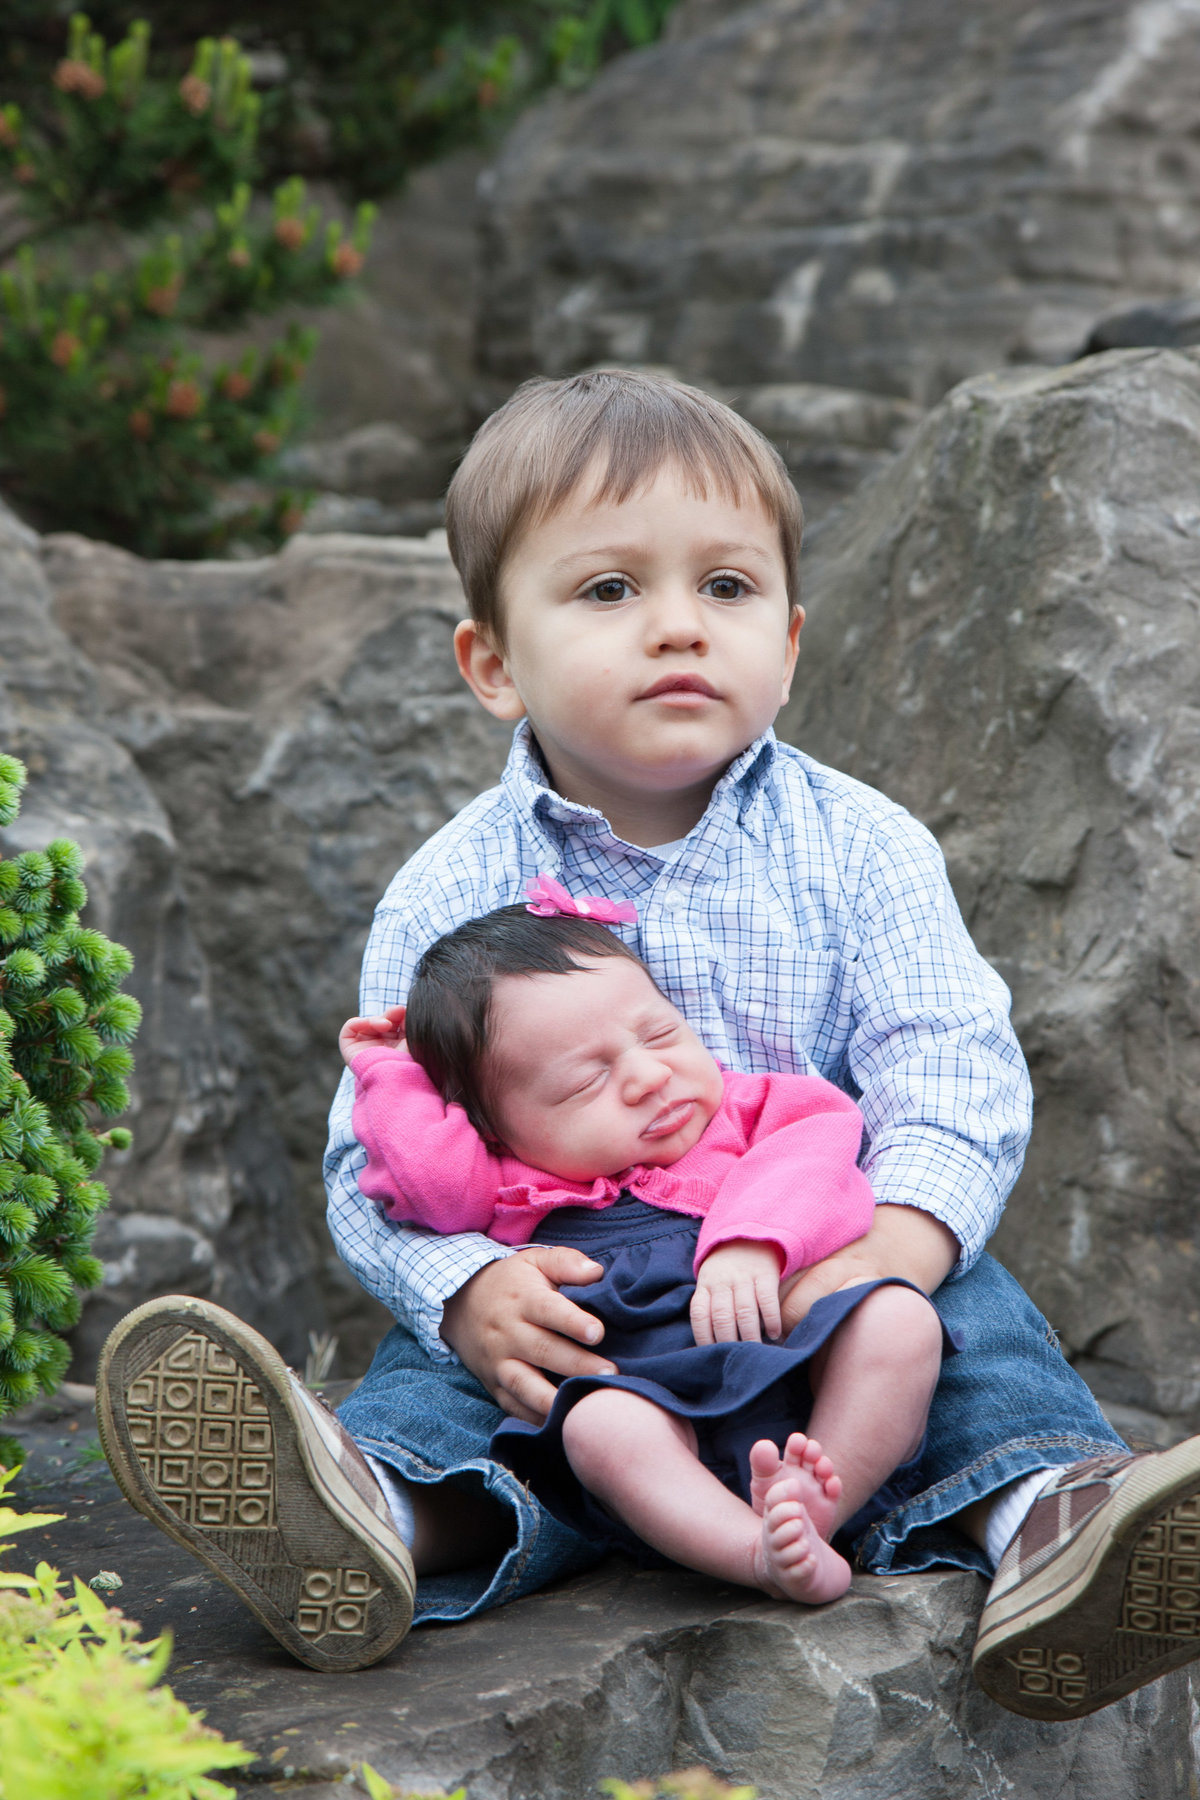 Brother and sister portrait on rocks at arboretum